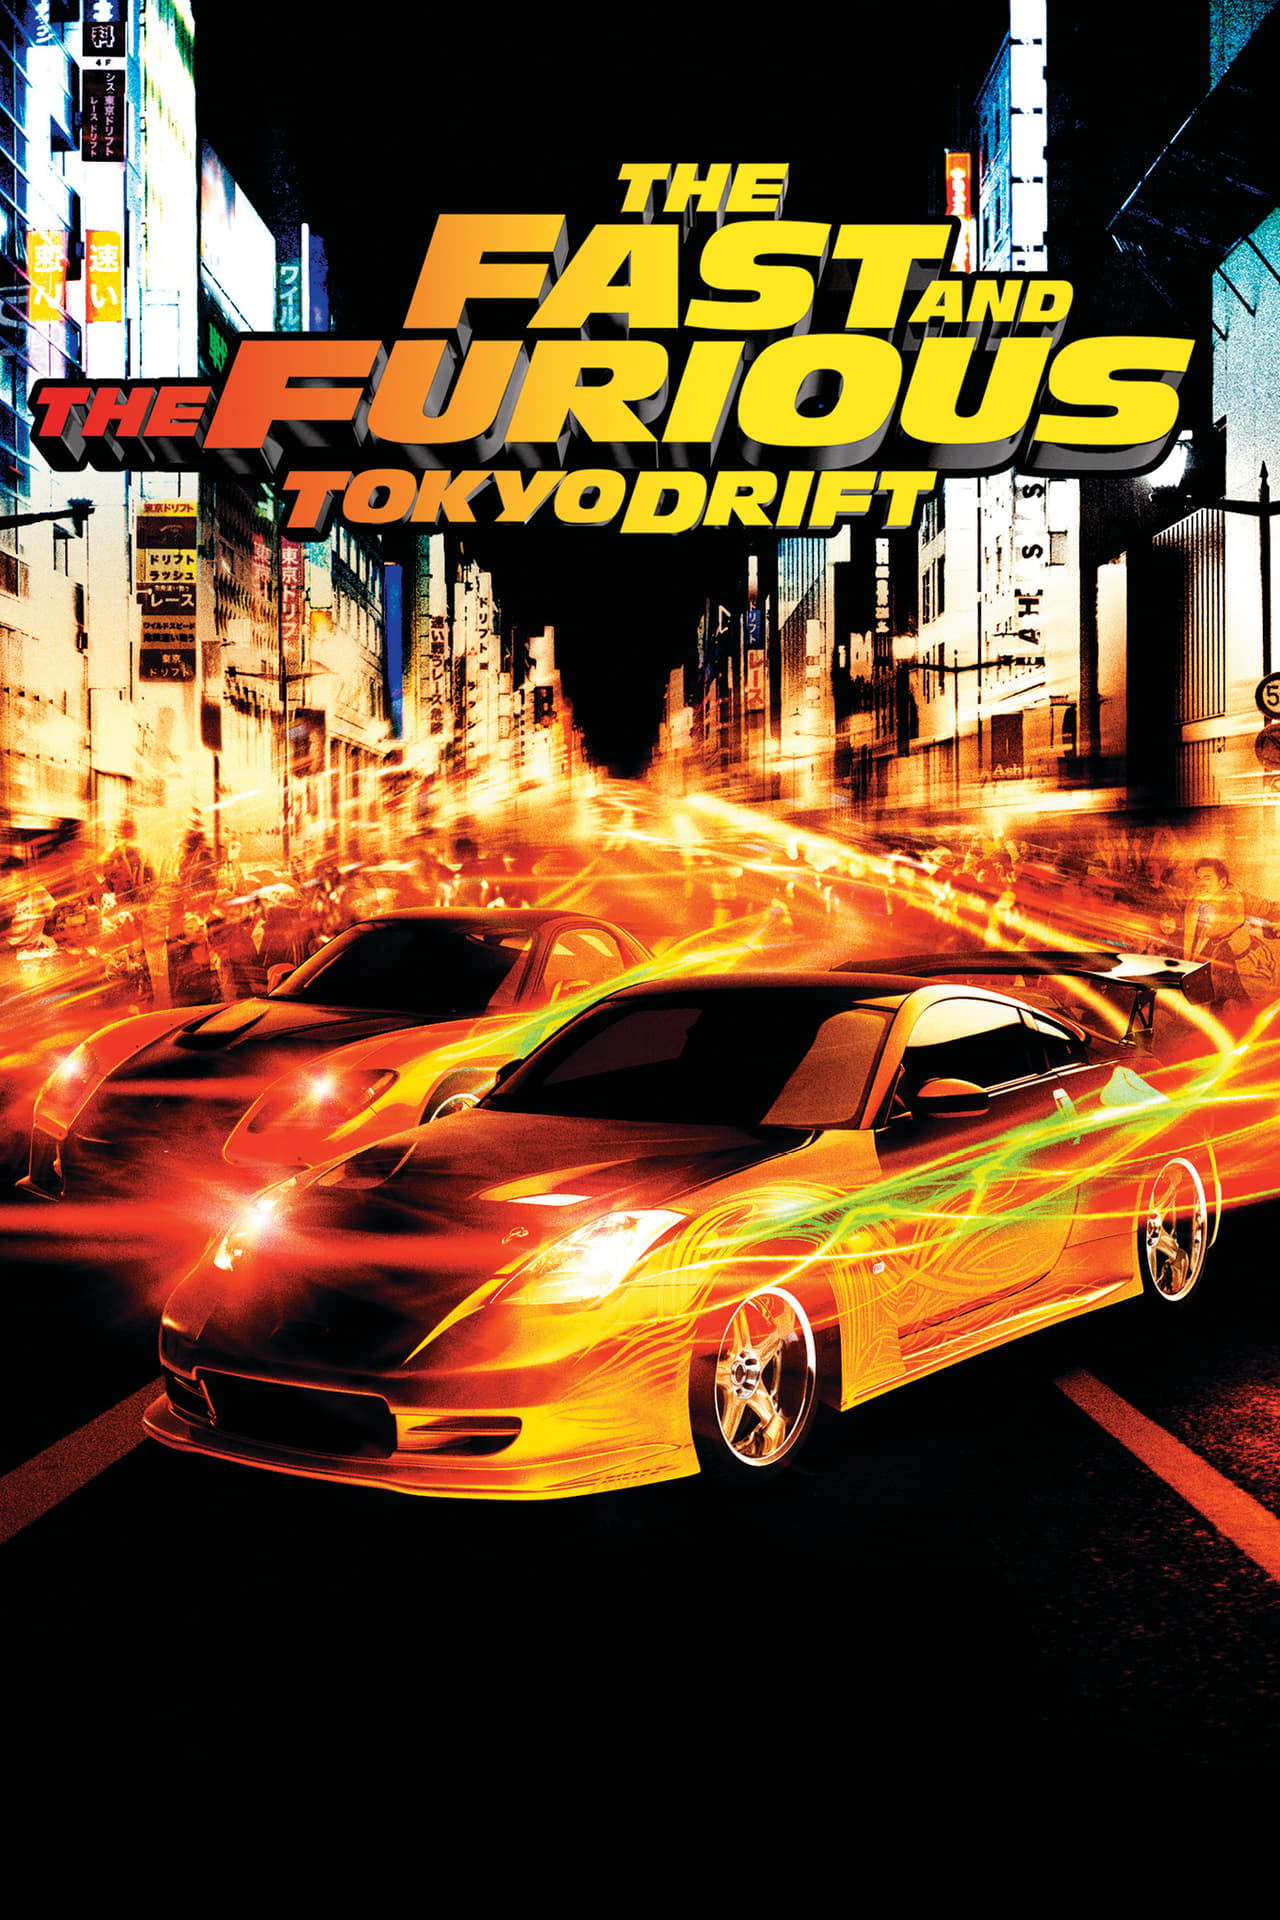 The Fast and The Furious: Tokyo Drift by Justin Lin